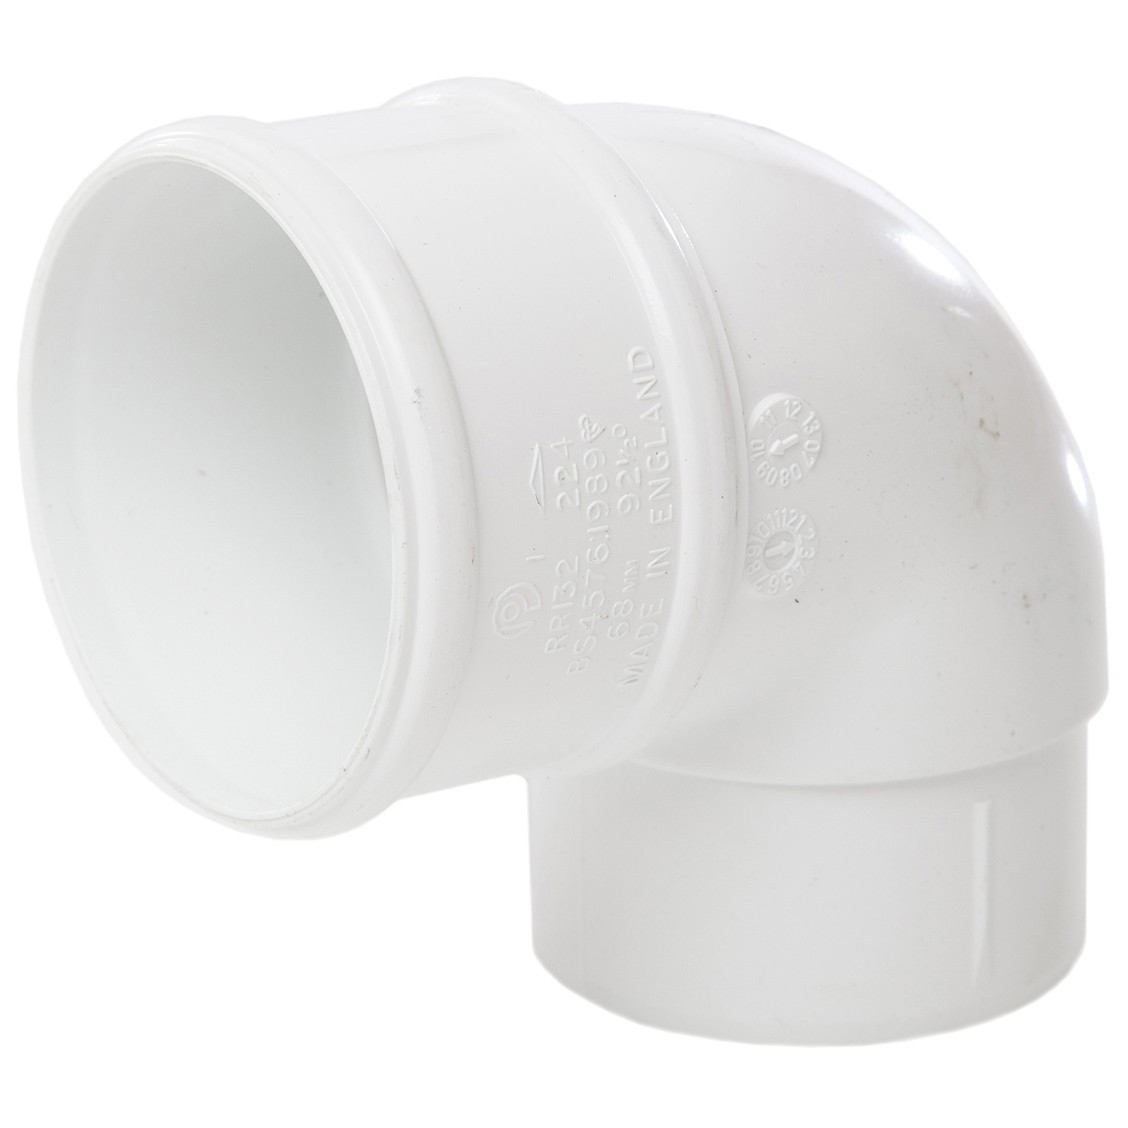 Polypipe 68mm Round Down Pipe 92.5 Degree Offset Bend - White